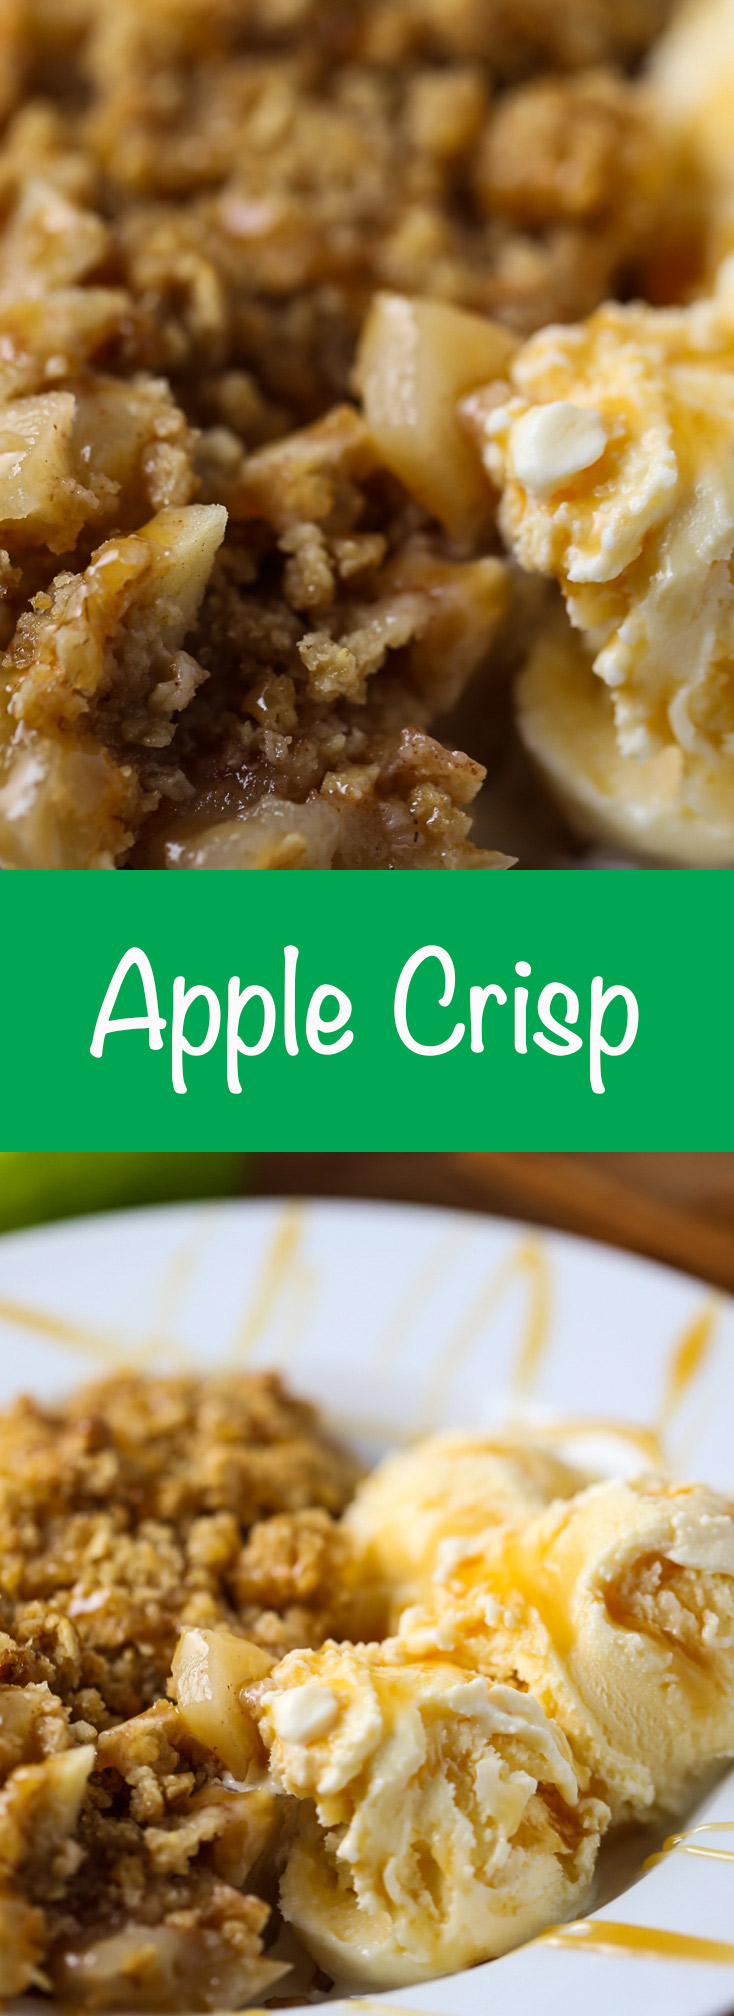 Apple-Crisp-A classic and cozy dessert! Serve with vanilla ice cream is a must!